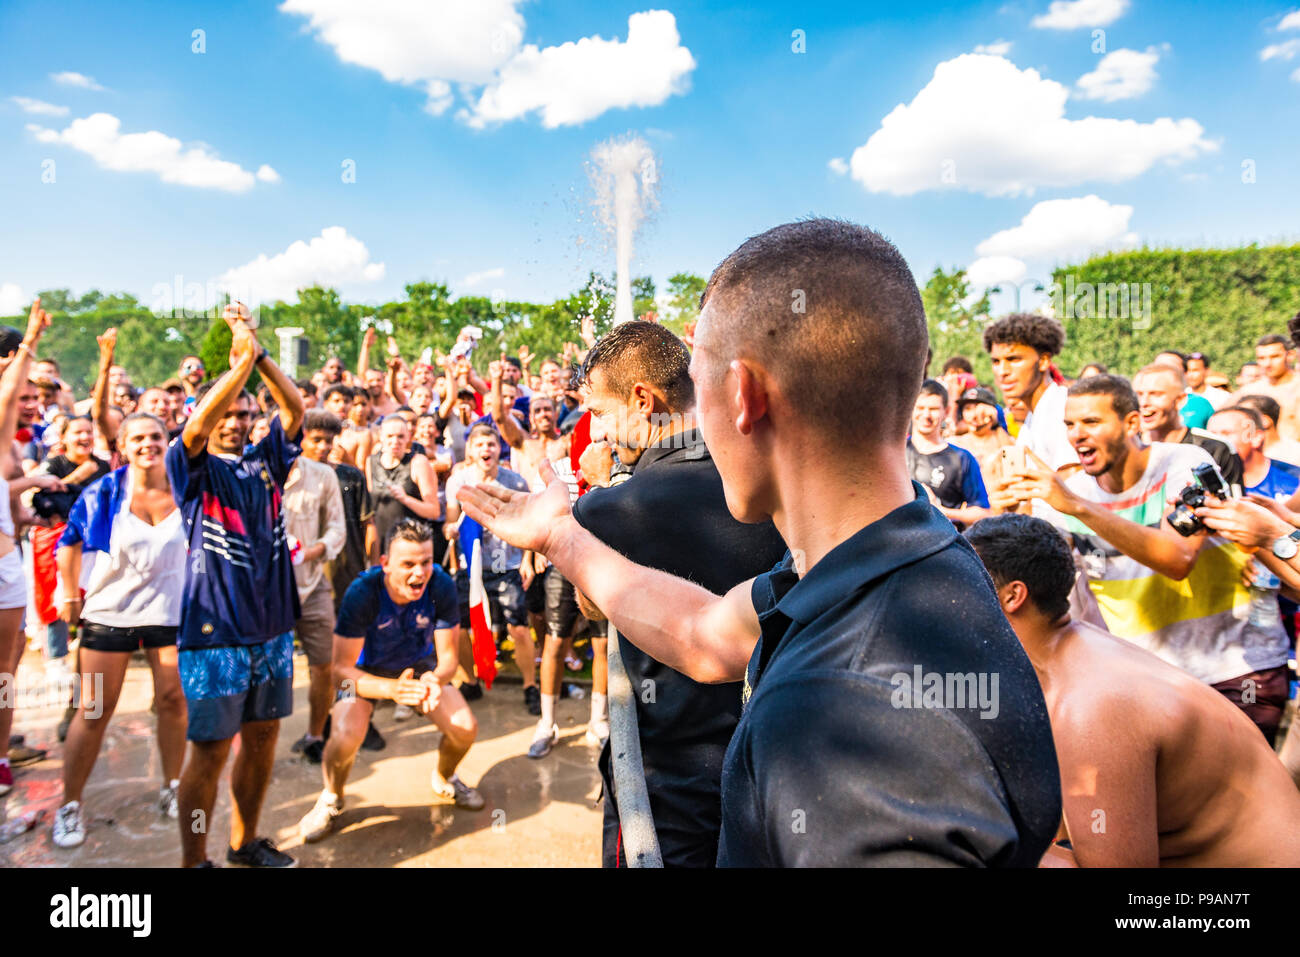 Firemen hose the crowd with water on the Champ de Mars in Paris as France wins the World Cup. Paris, France. - Stock Image